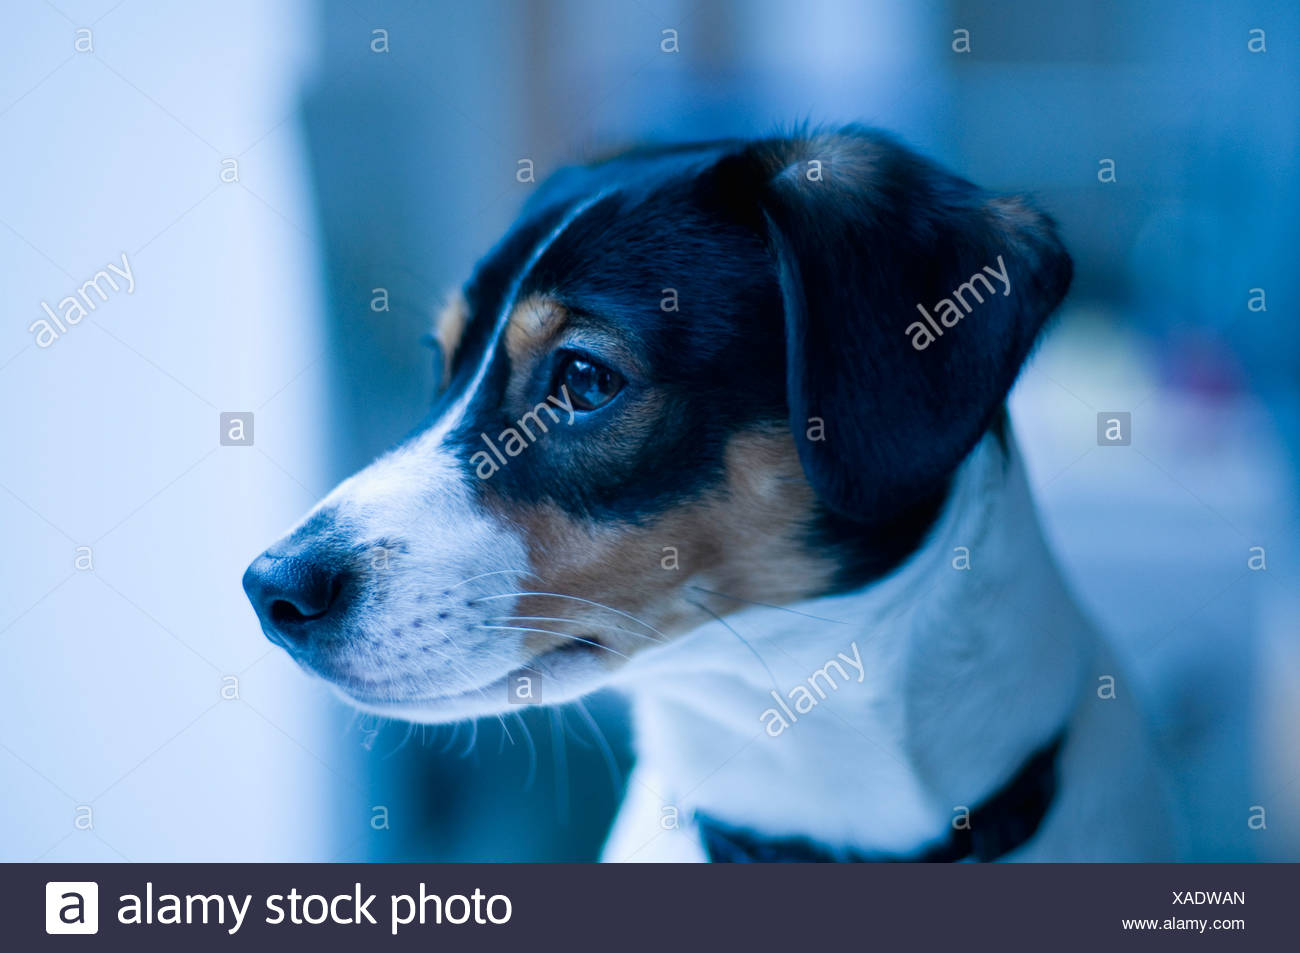 Dog looking away - Stock Image